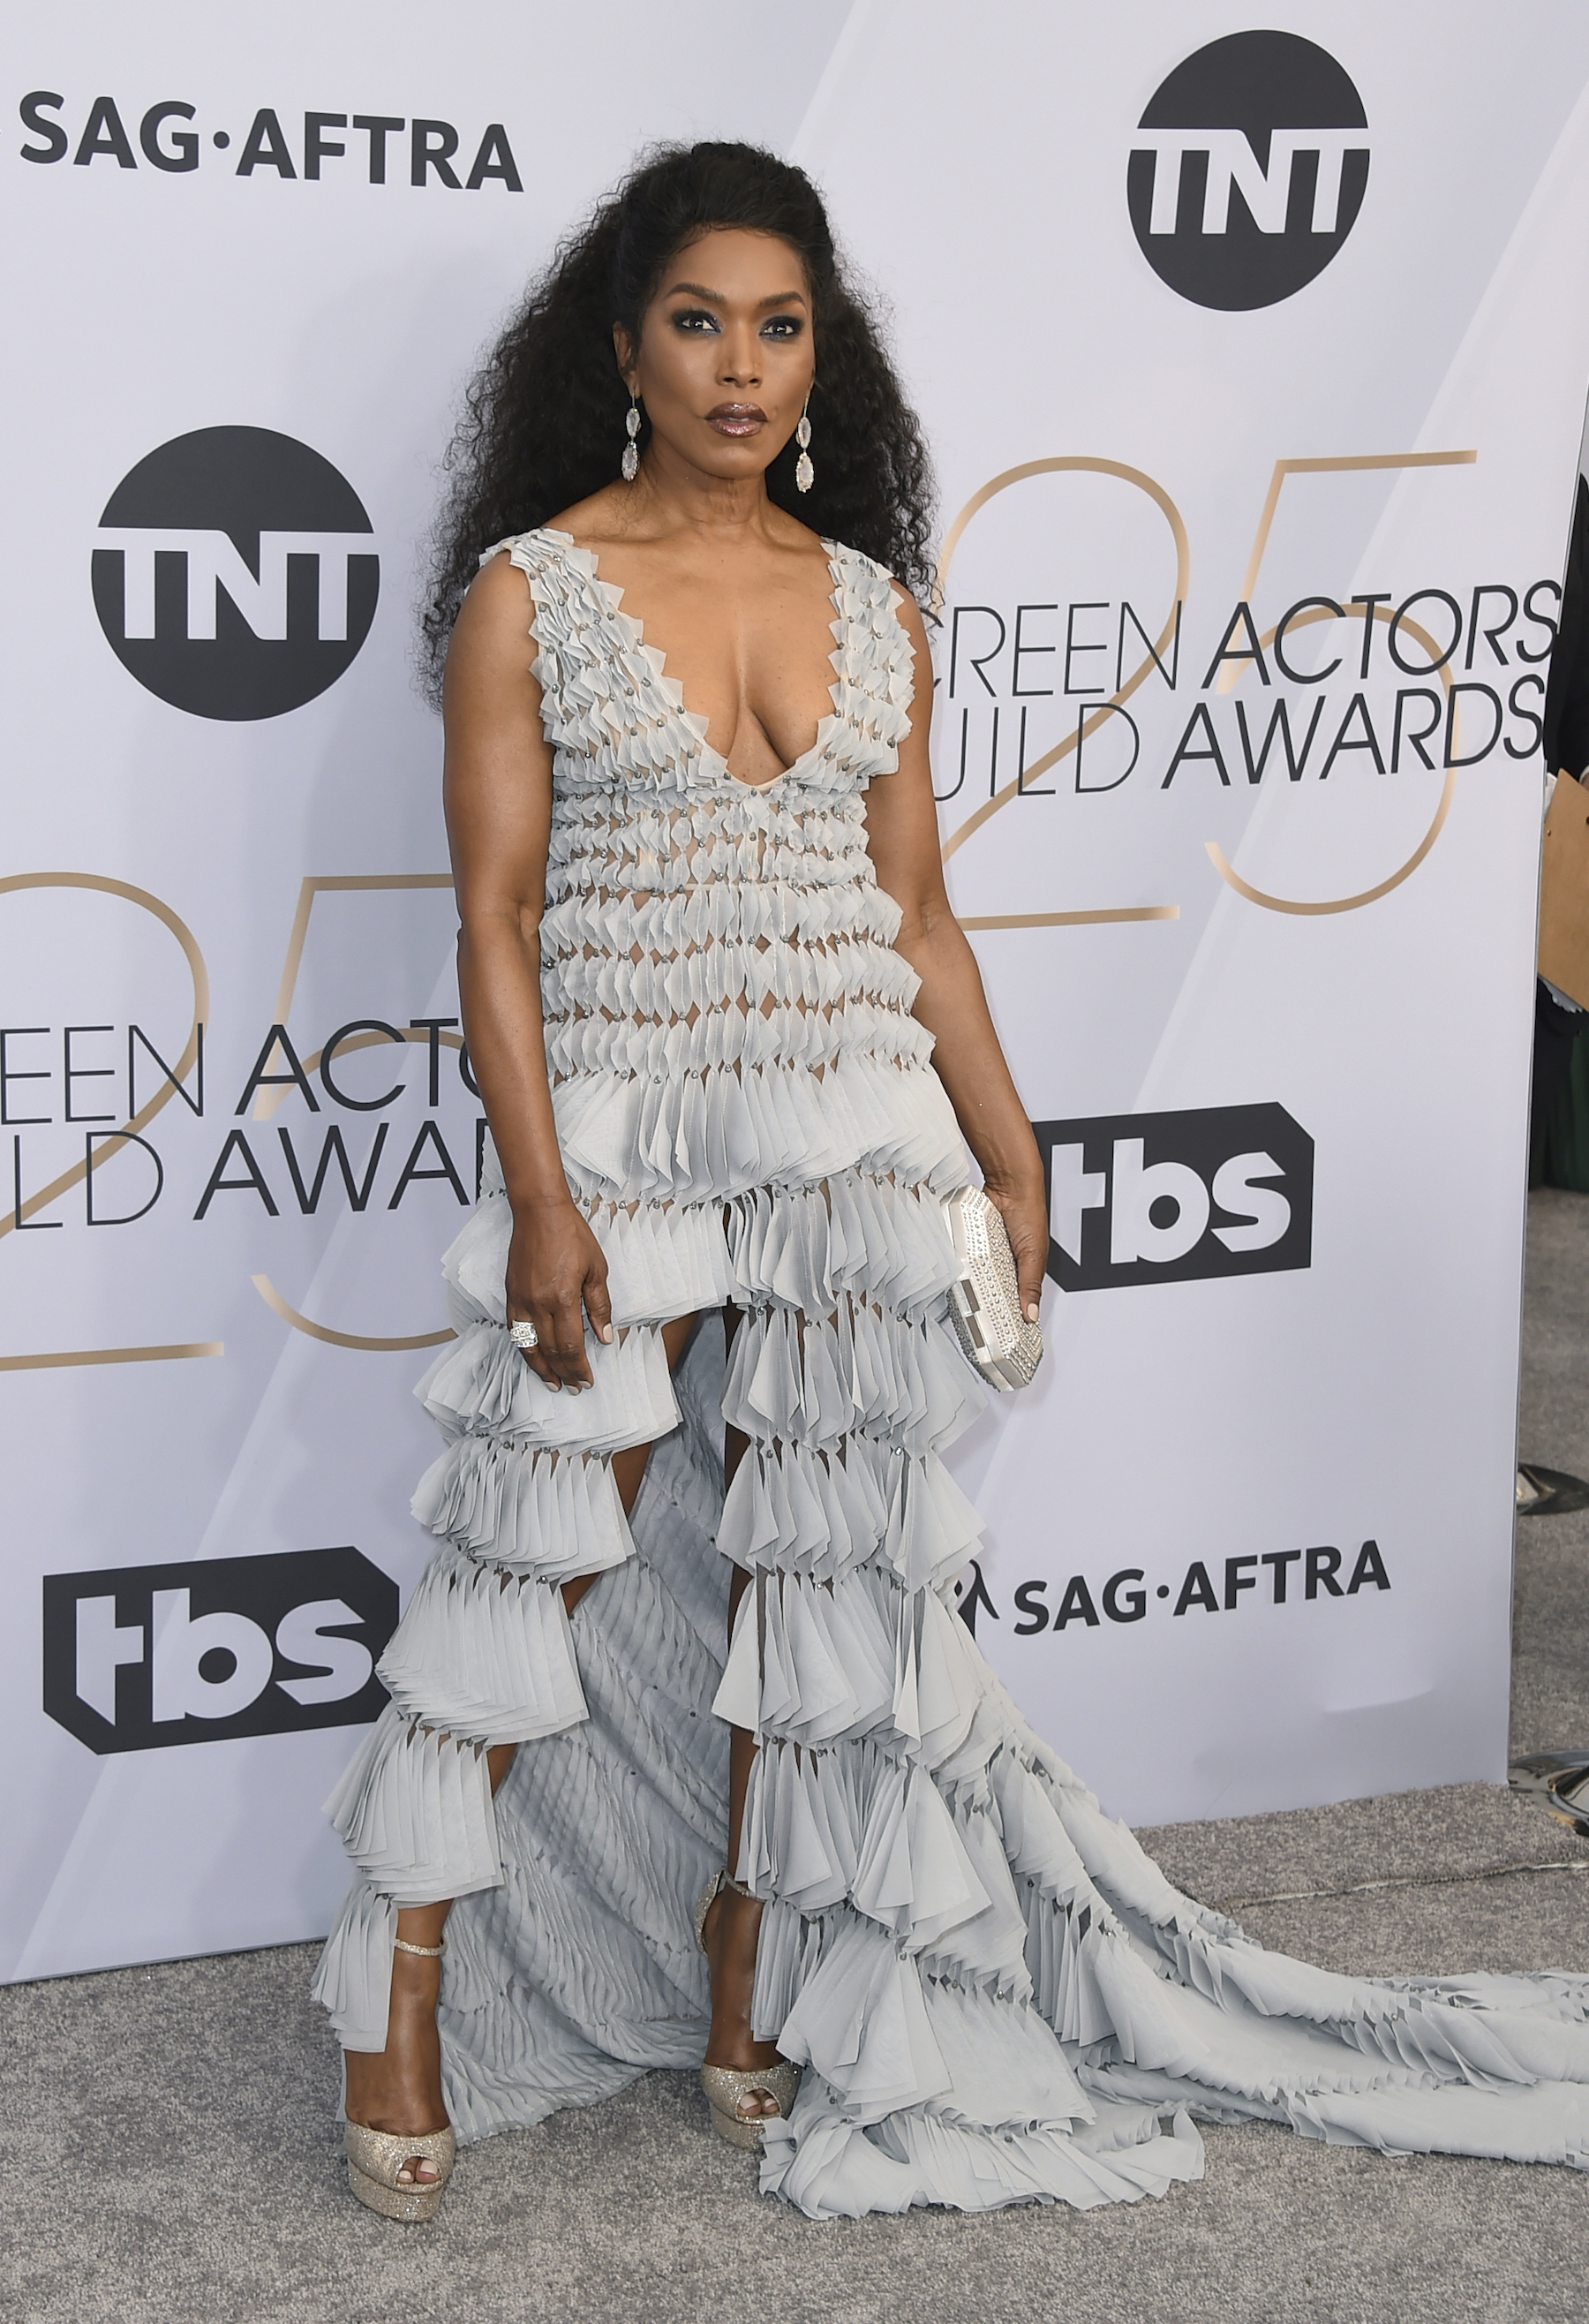 "<div class=""meta image-caption""><div class=""origin-logo origin-image ap""><span>AP</span></div><span class=""caption-text"">Angela Bassett arrives at the 25th annual Screen Actors Guild Awards at the Shrine Auditorium & Expo Hall on Sunday, Jan. 27, 2019, in Los Angeles. (Jordan Strauss/Invision/AP)</span></div>"